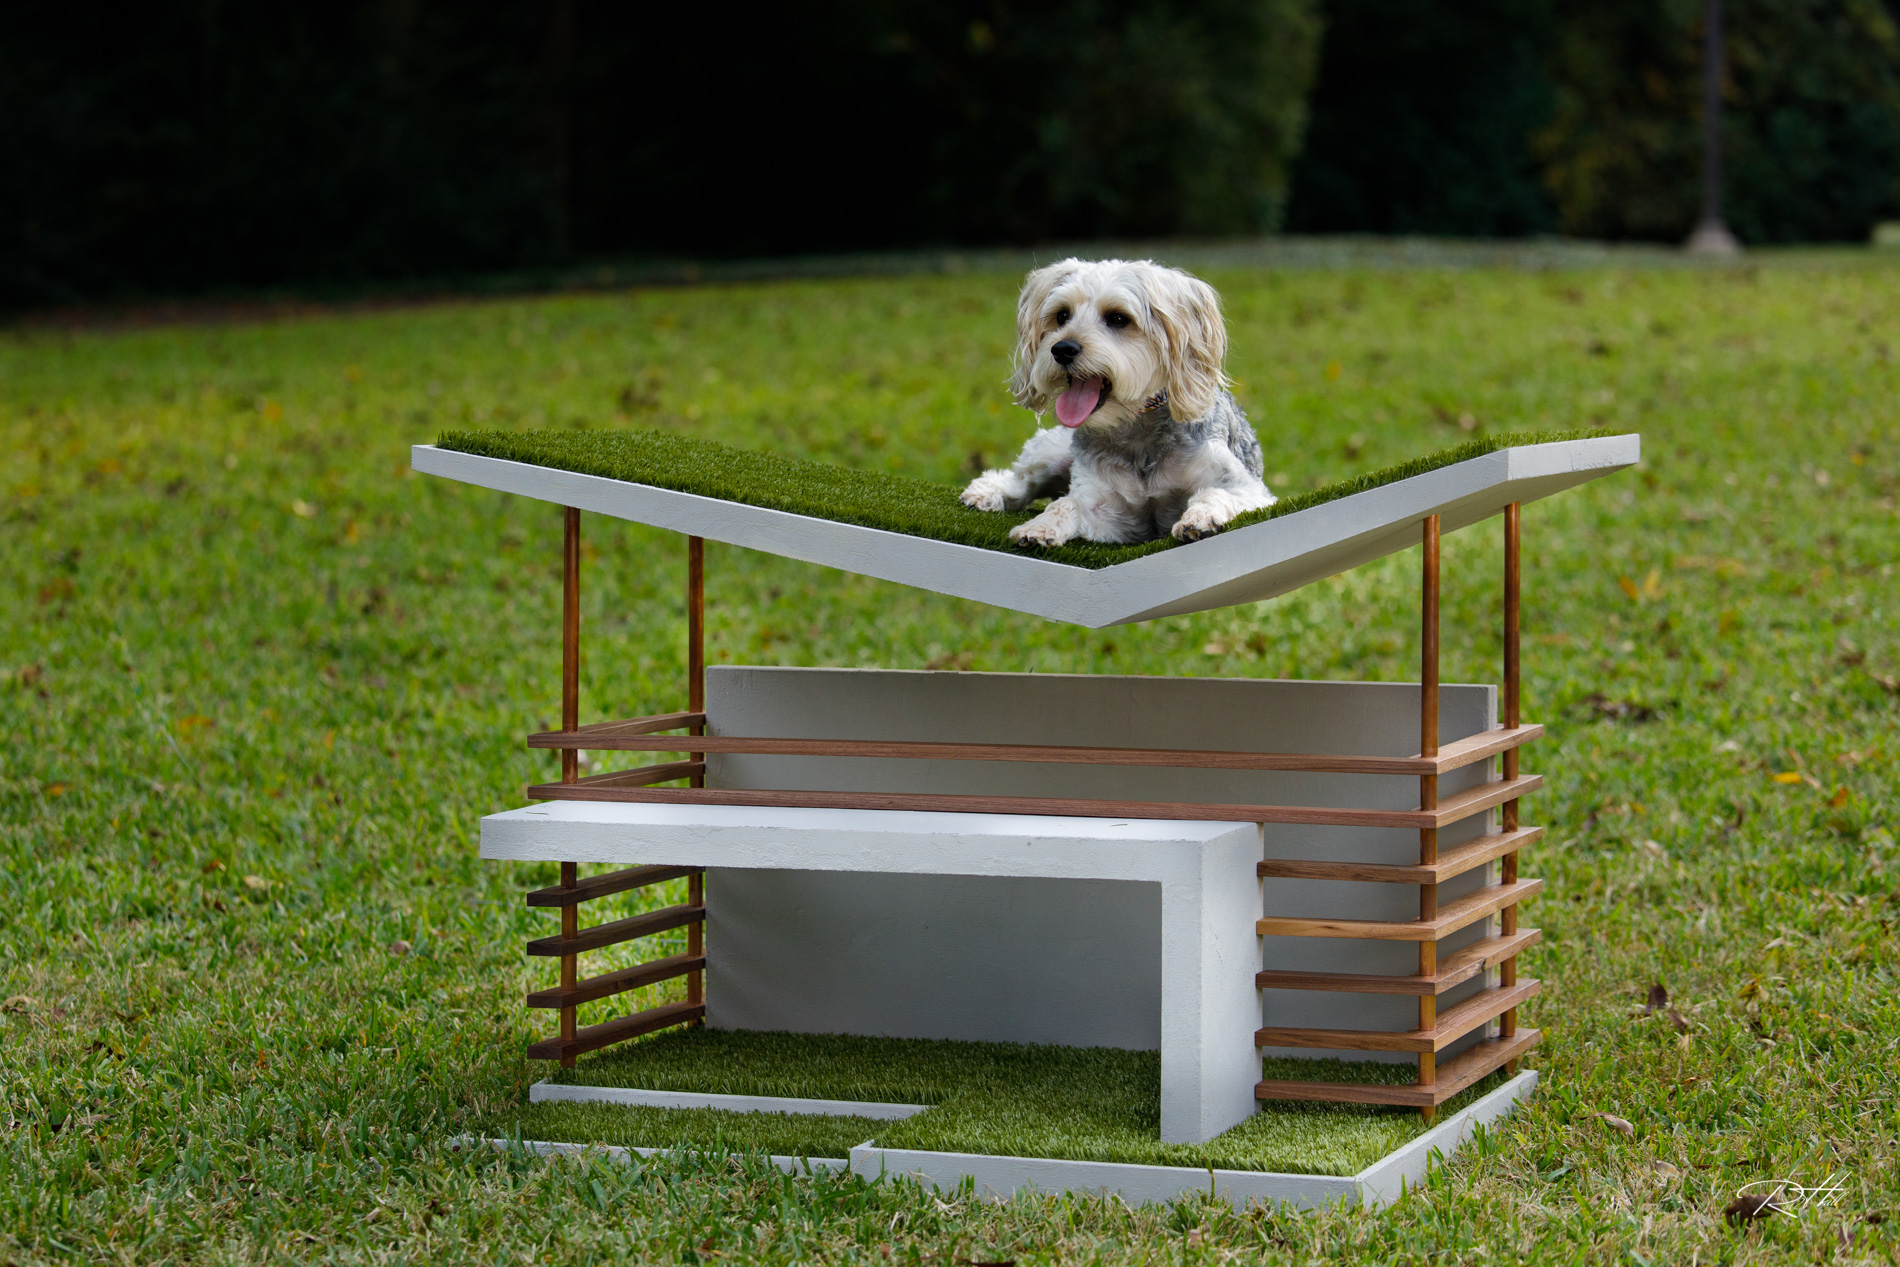 A dog with a doghouse designed for the Bark + Build design competition by members of the Dallas office